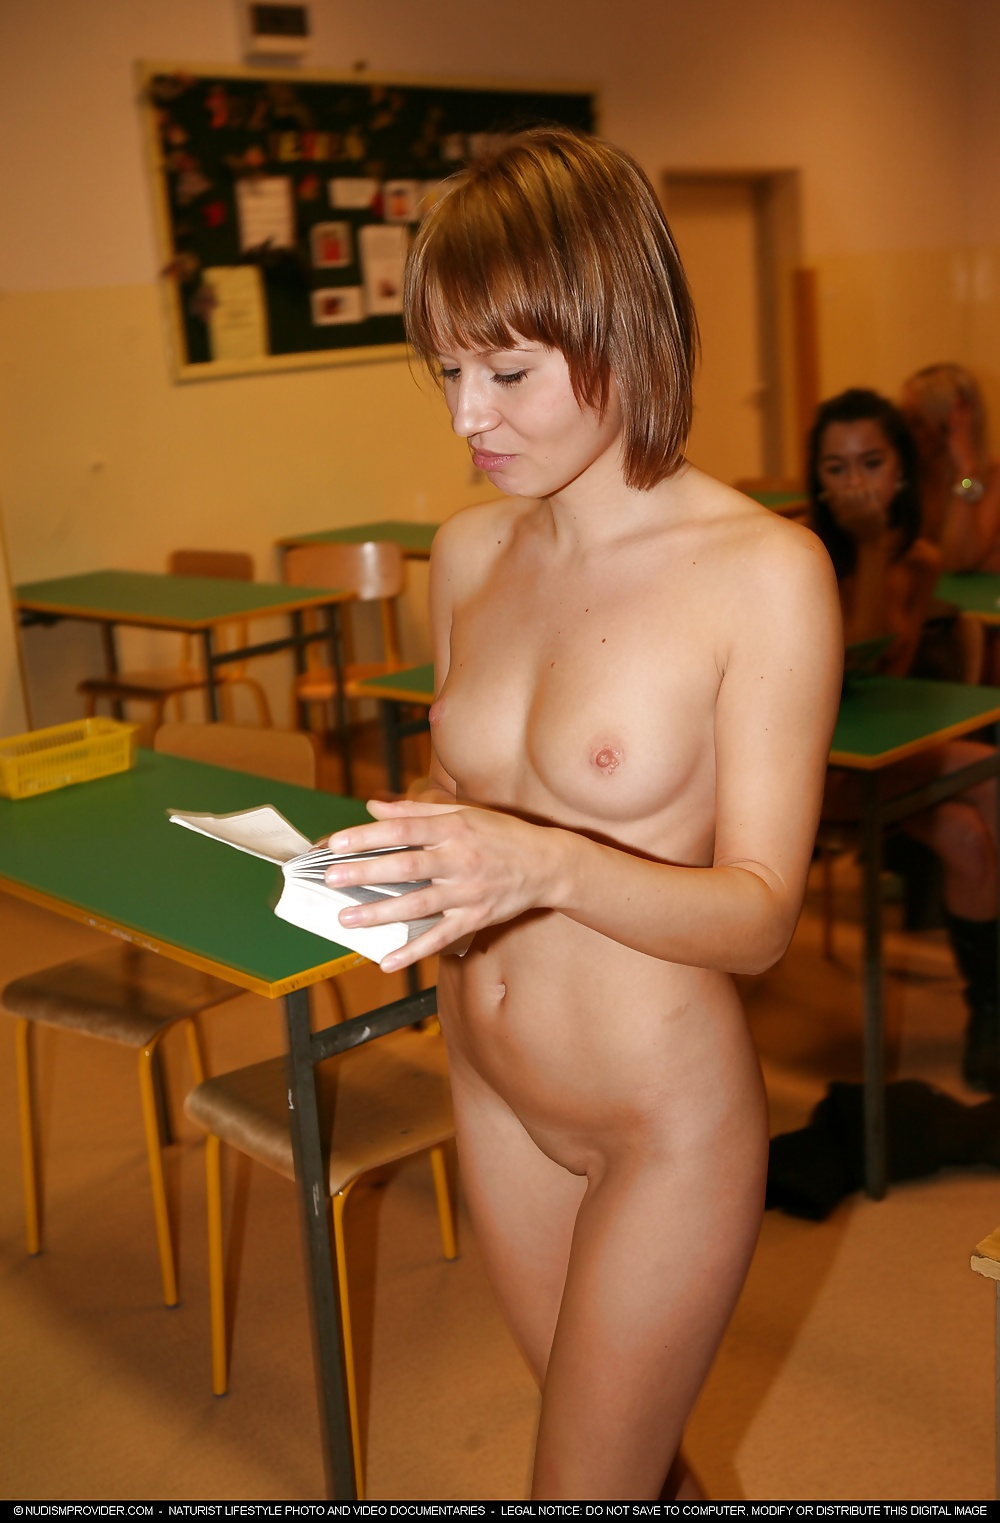 Hot nud in school #10